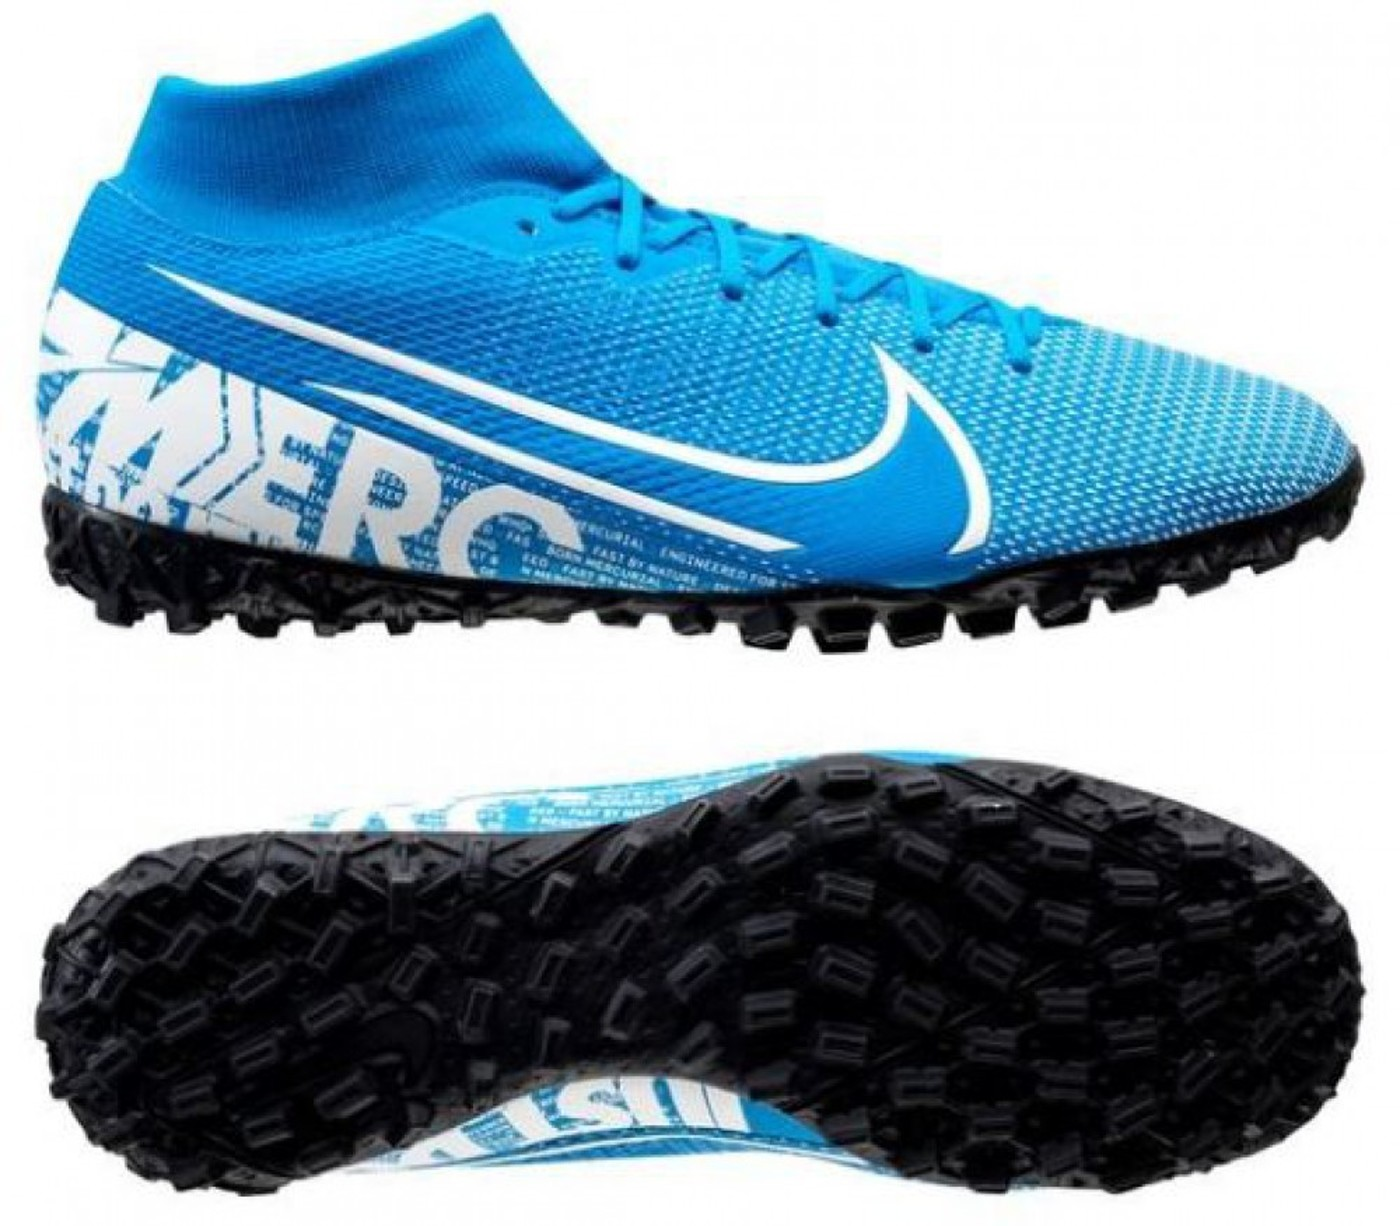 Nike Mercurial Superfly 7 Acad